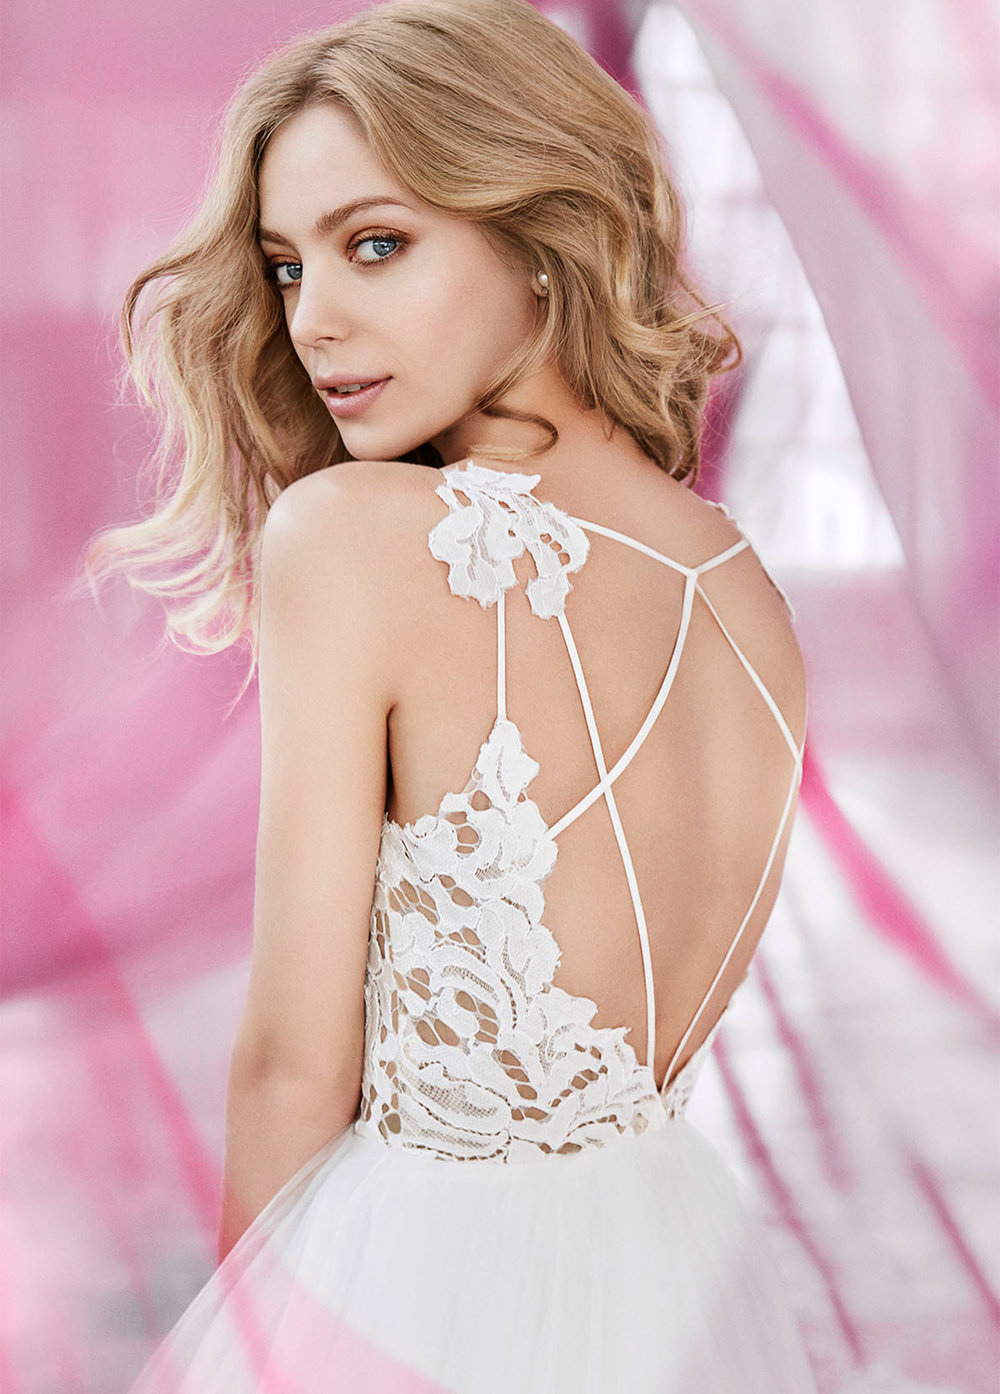 blush-hayley-paige-bridal-lace-tulle-ball-gown-scalloped-v-neck-strap-tiered-tulle-horsehair-trim-1600_x5.jpg